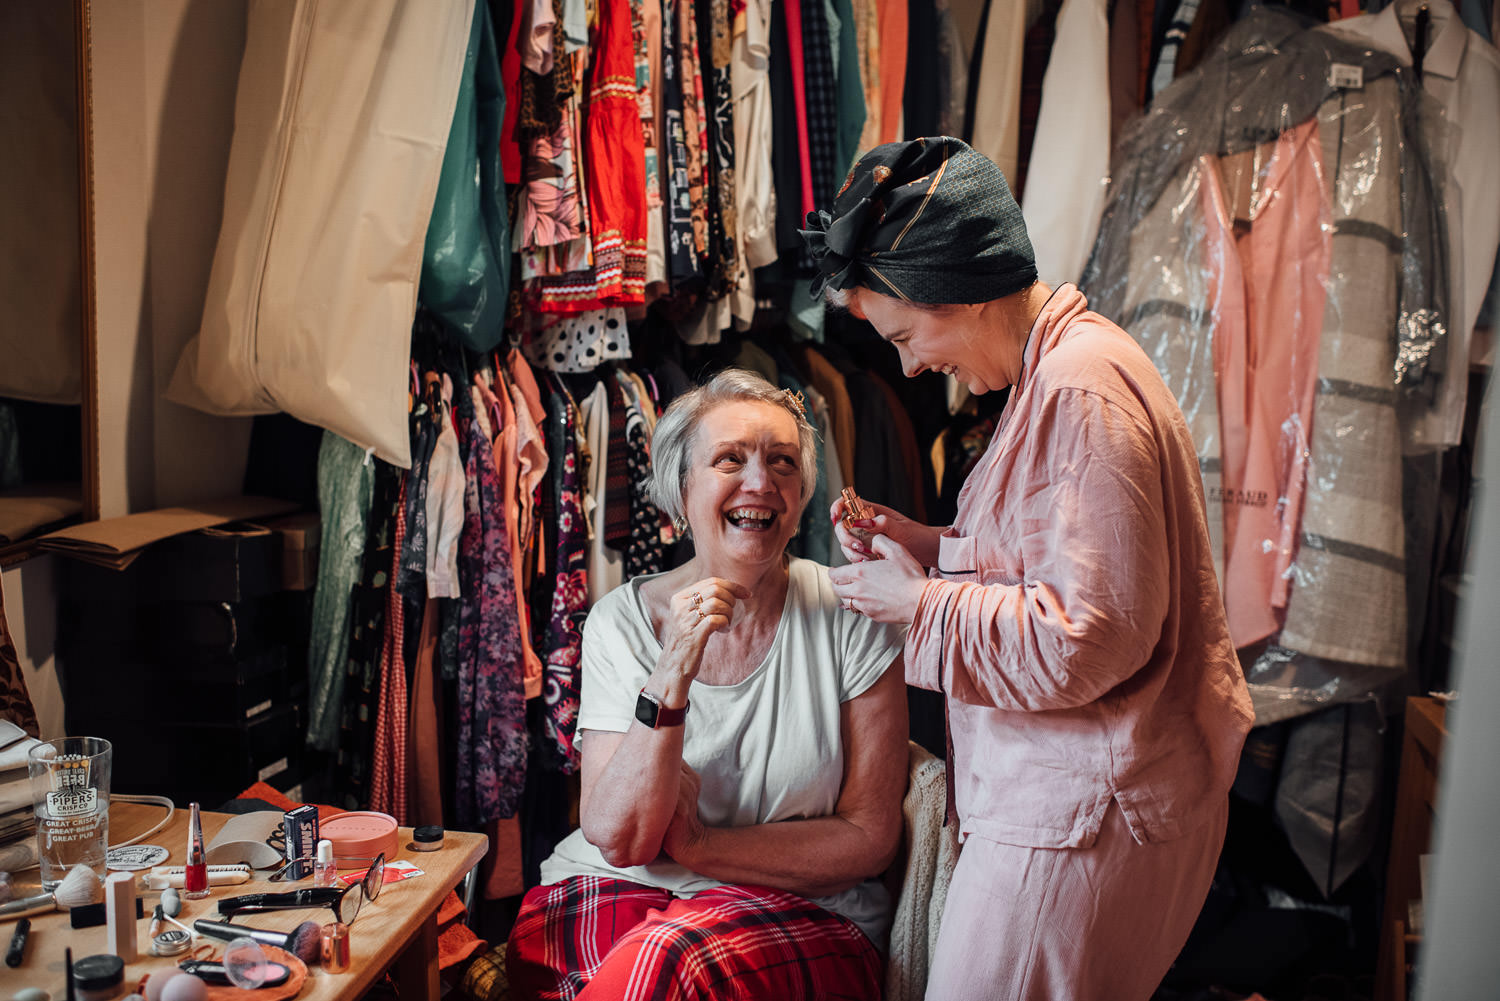 mother of the bride getting ready in retro styled wedding